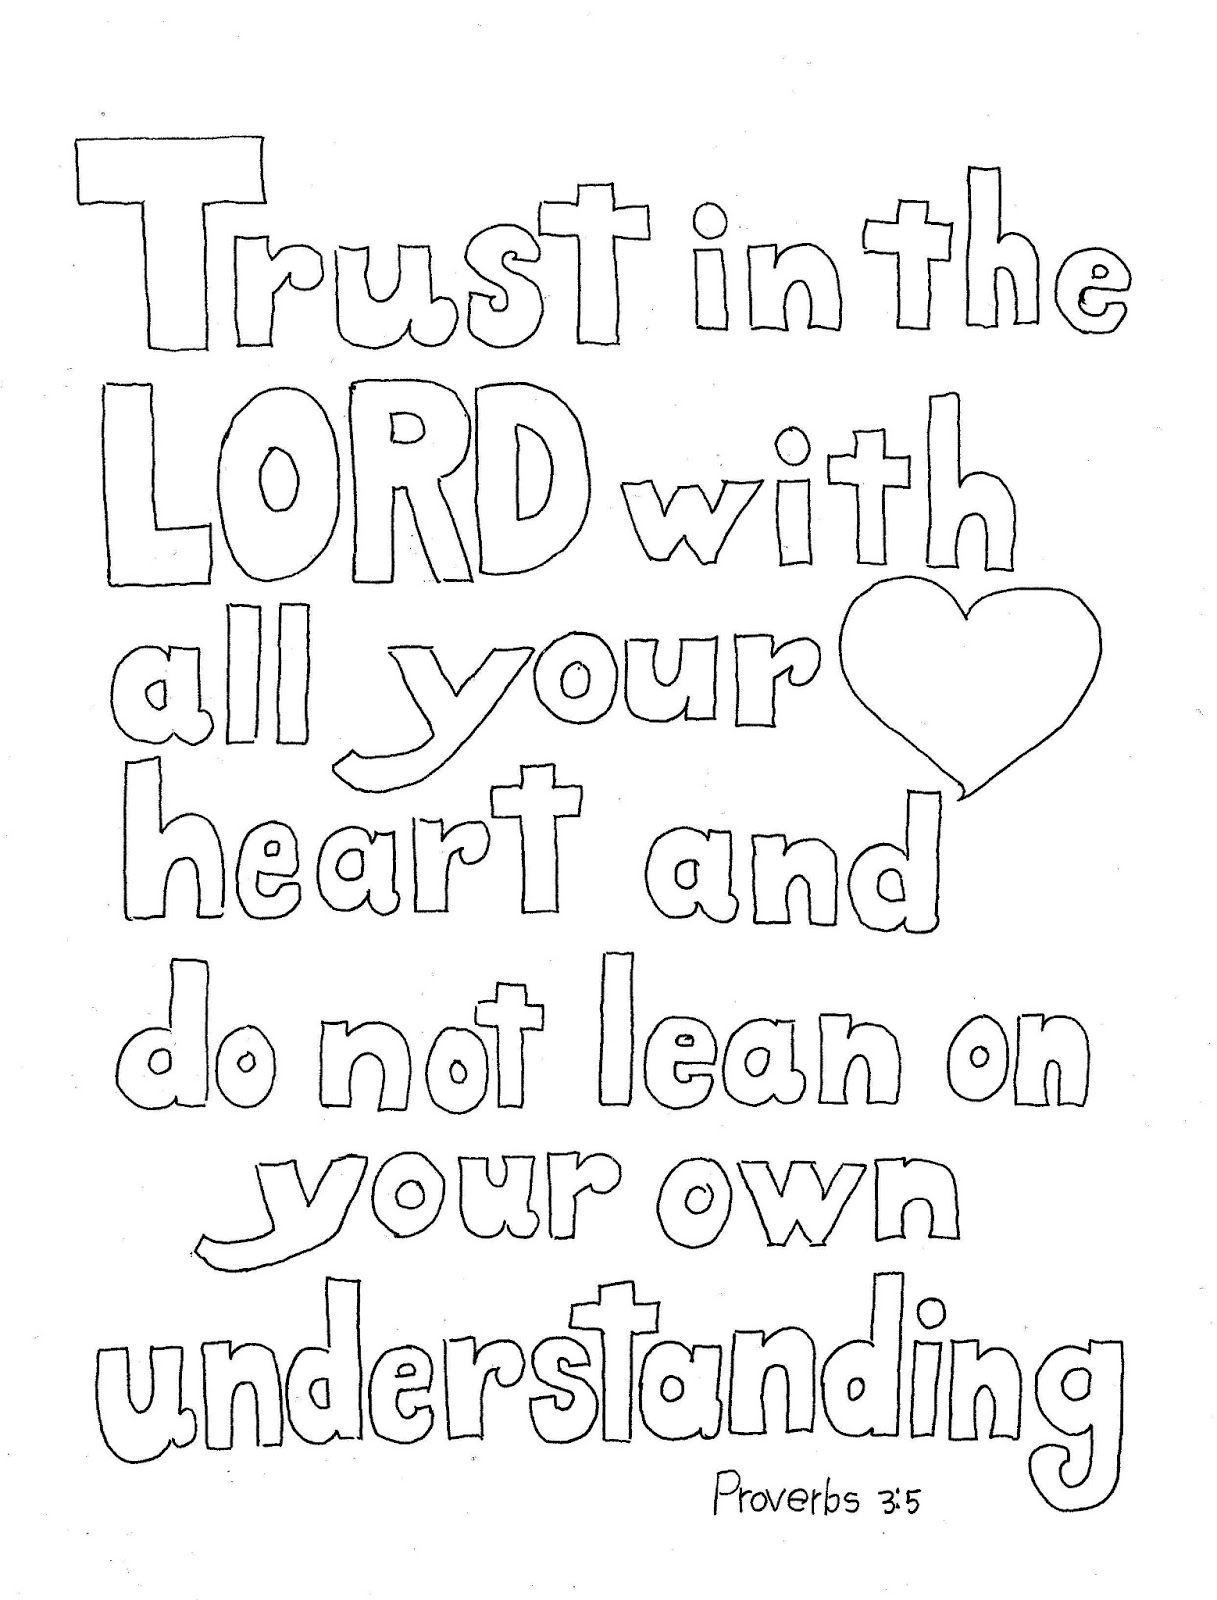 Pin by Adron Dozat on Coloring Pages for Kid Bible verse